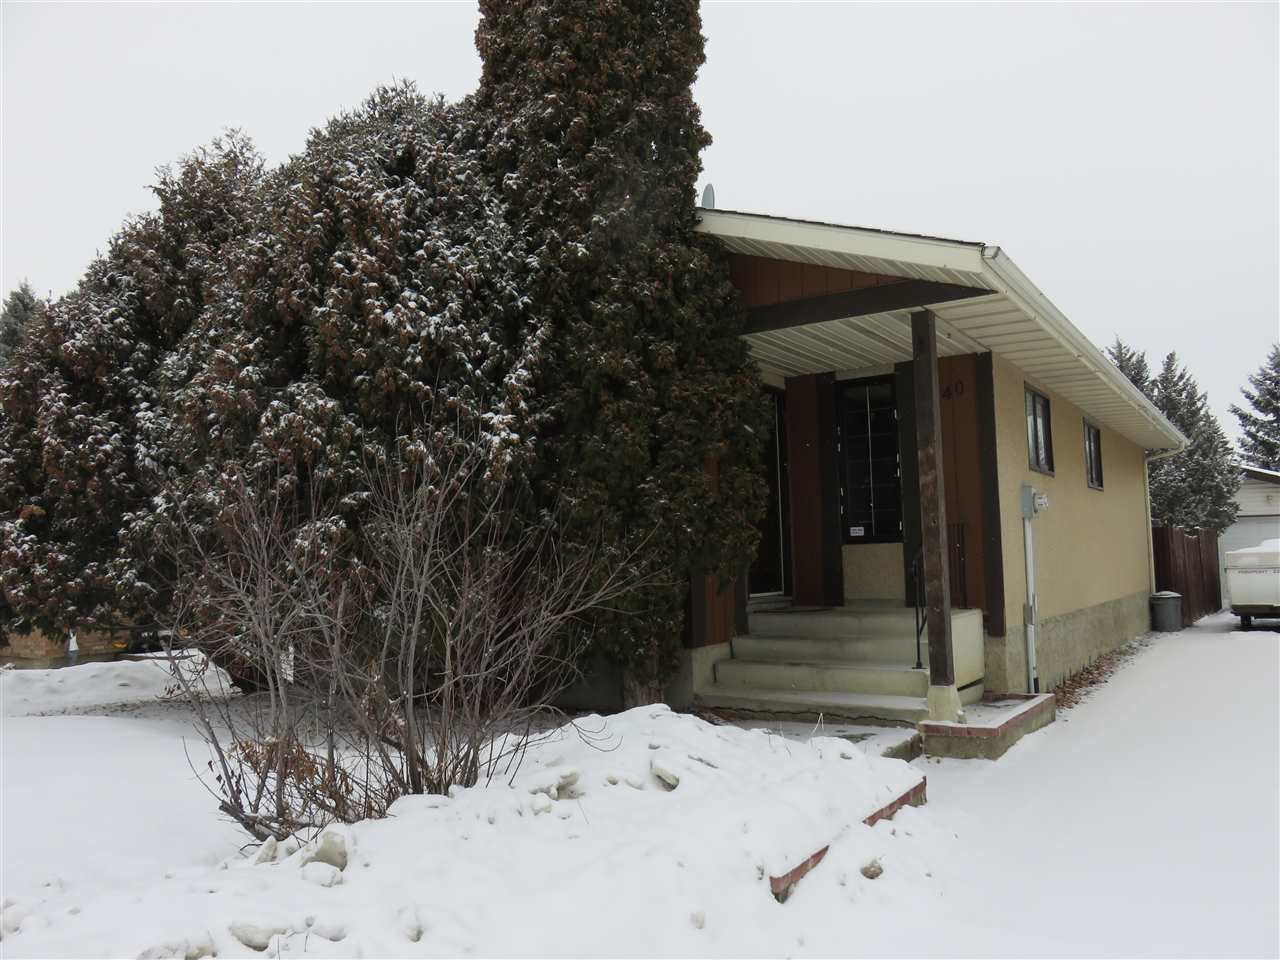 Main Photo: 1240 65 Street NW in Edmonton: Zone 29 House for sale : MLS®# E4143378